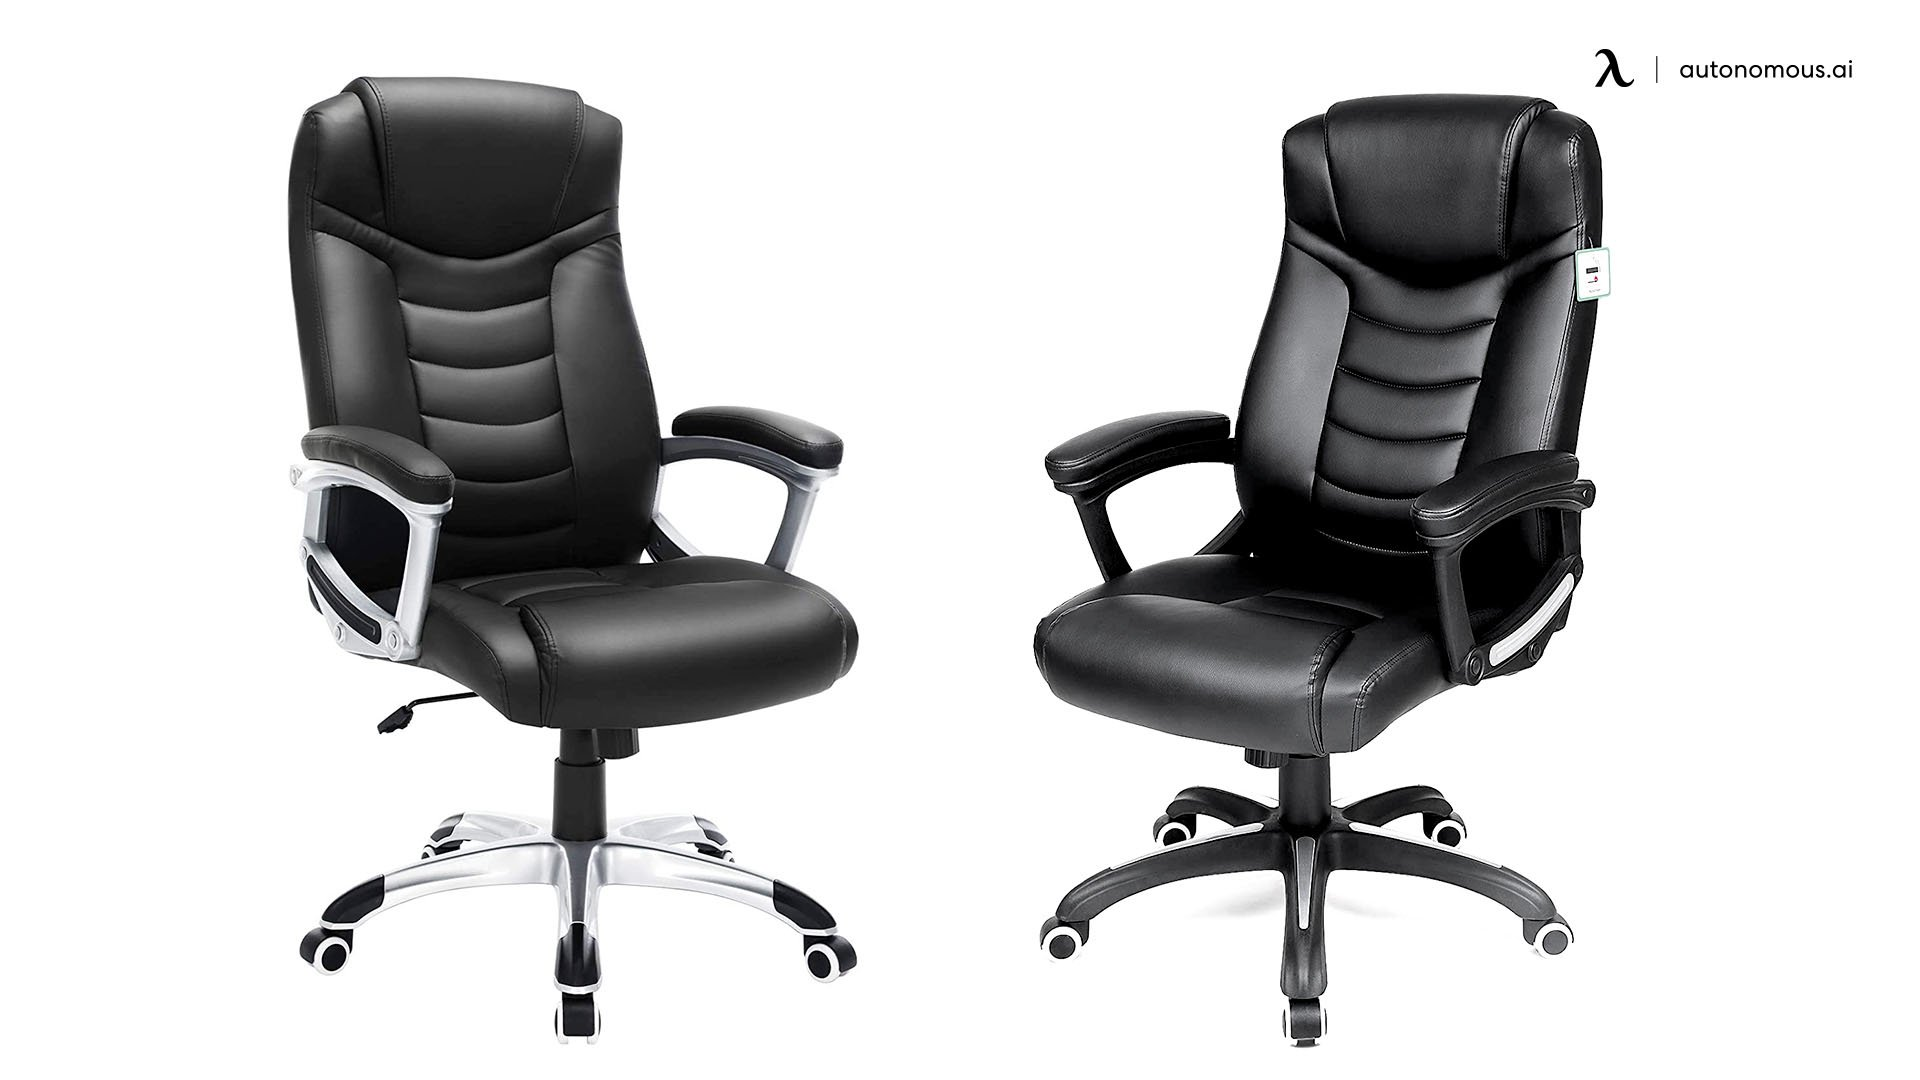 Black Ergonomic Office Chair with Casters - Songmics